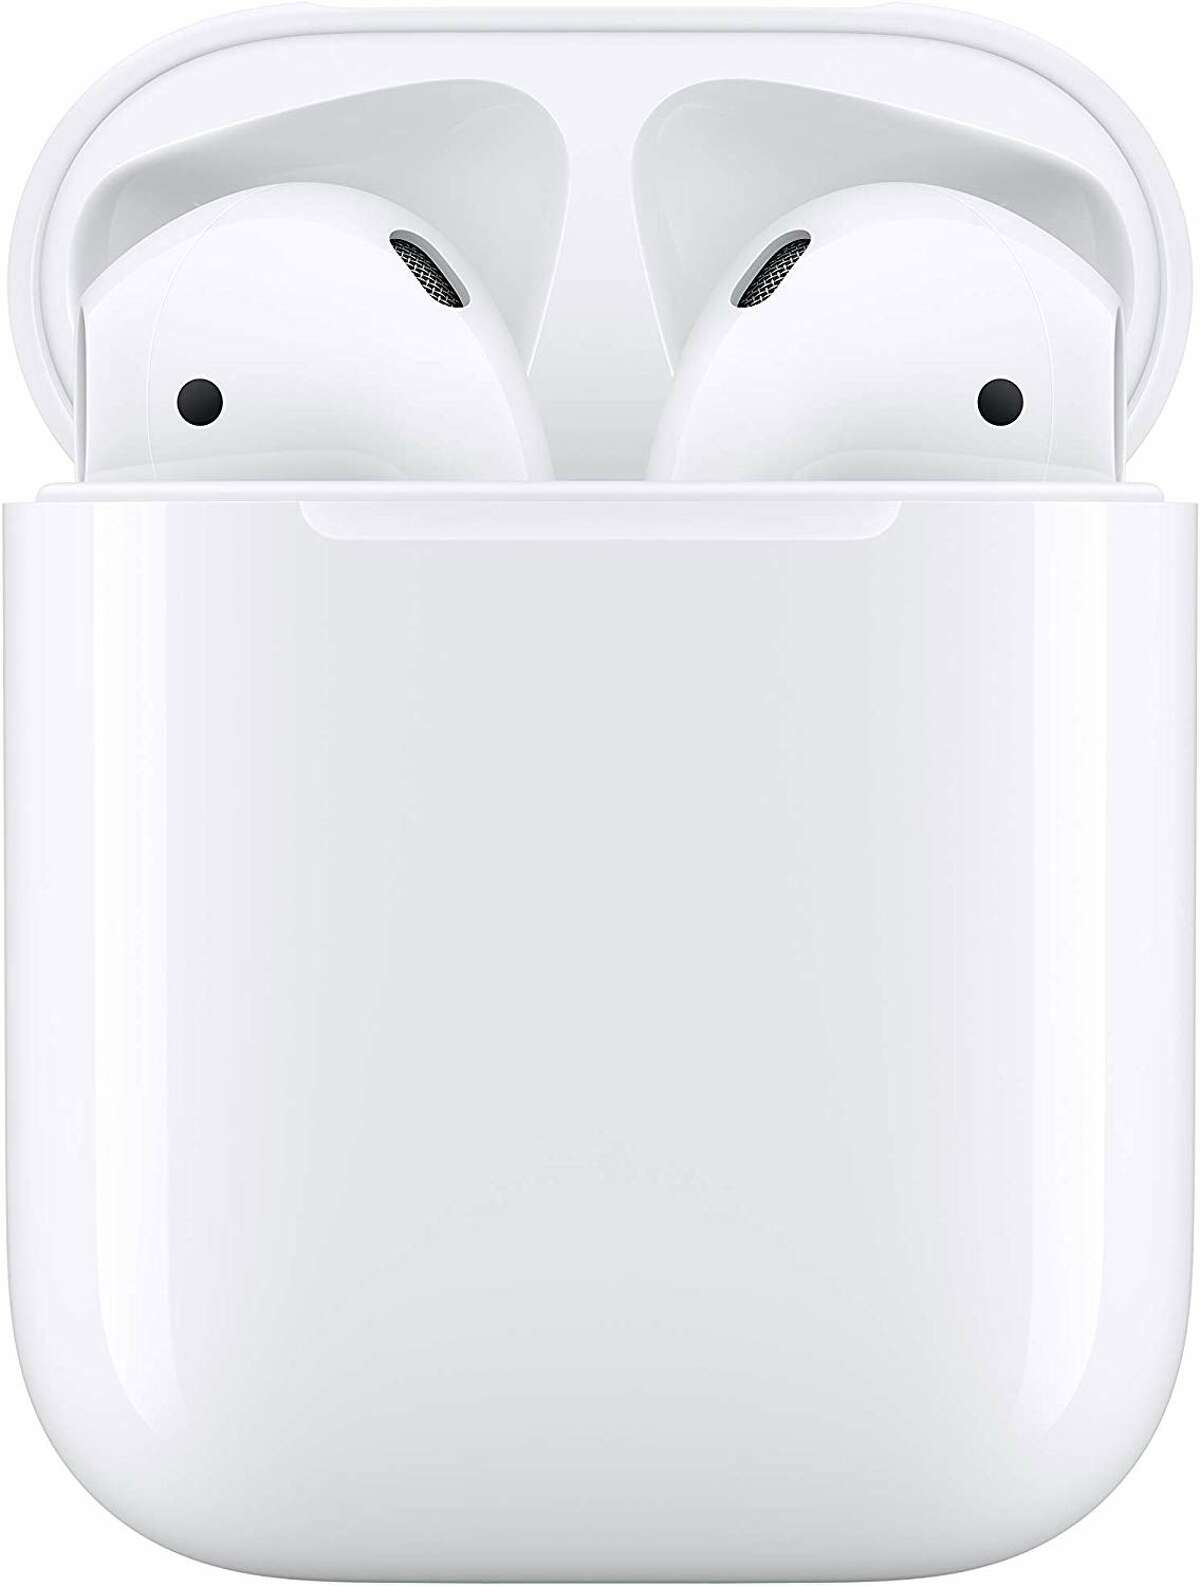 Apple AirPods with Charging Case (Latest Model) for $139.00 at Amazon